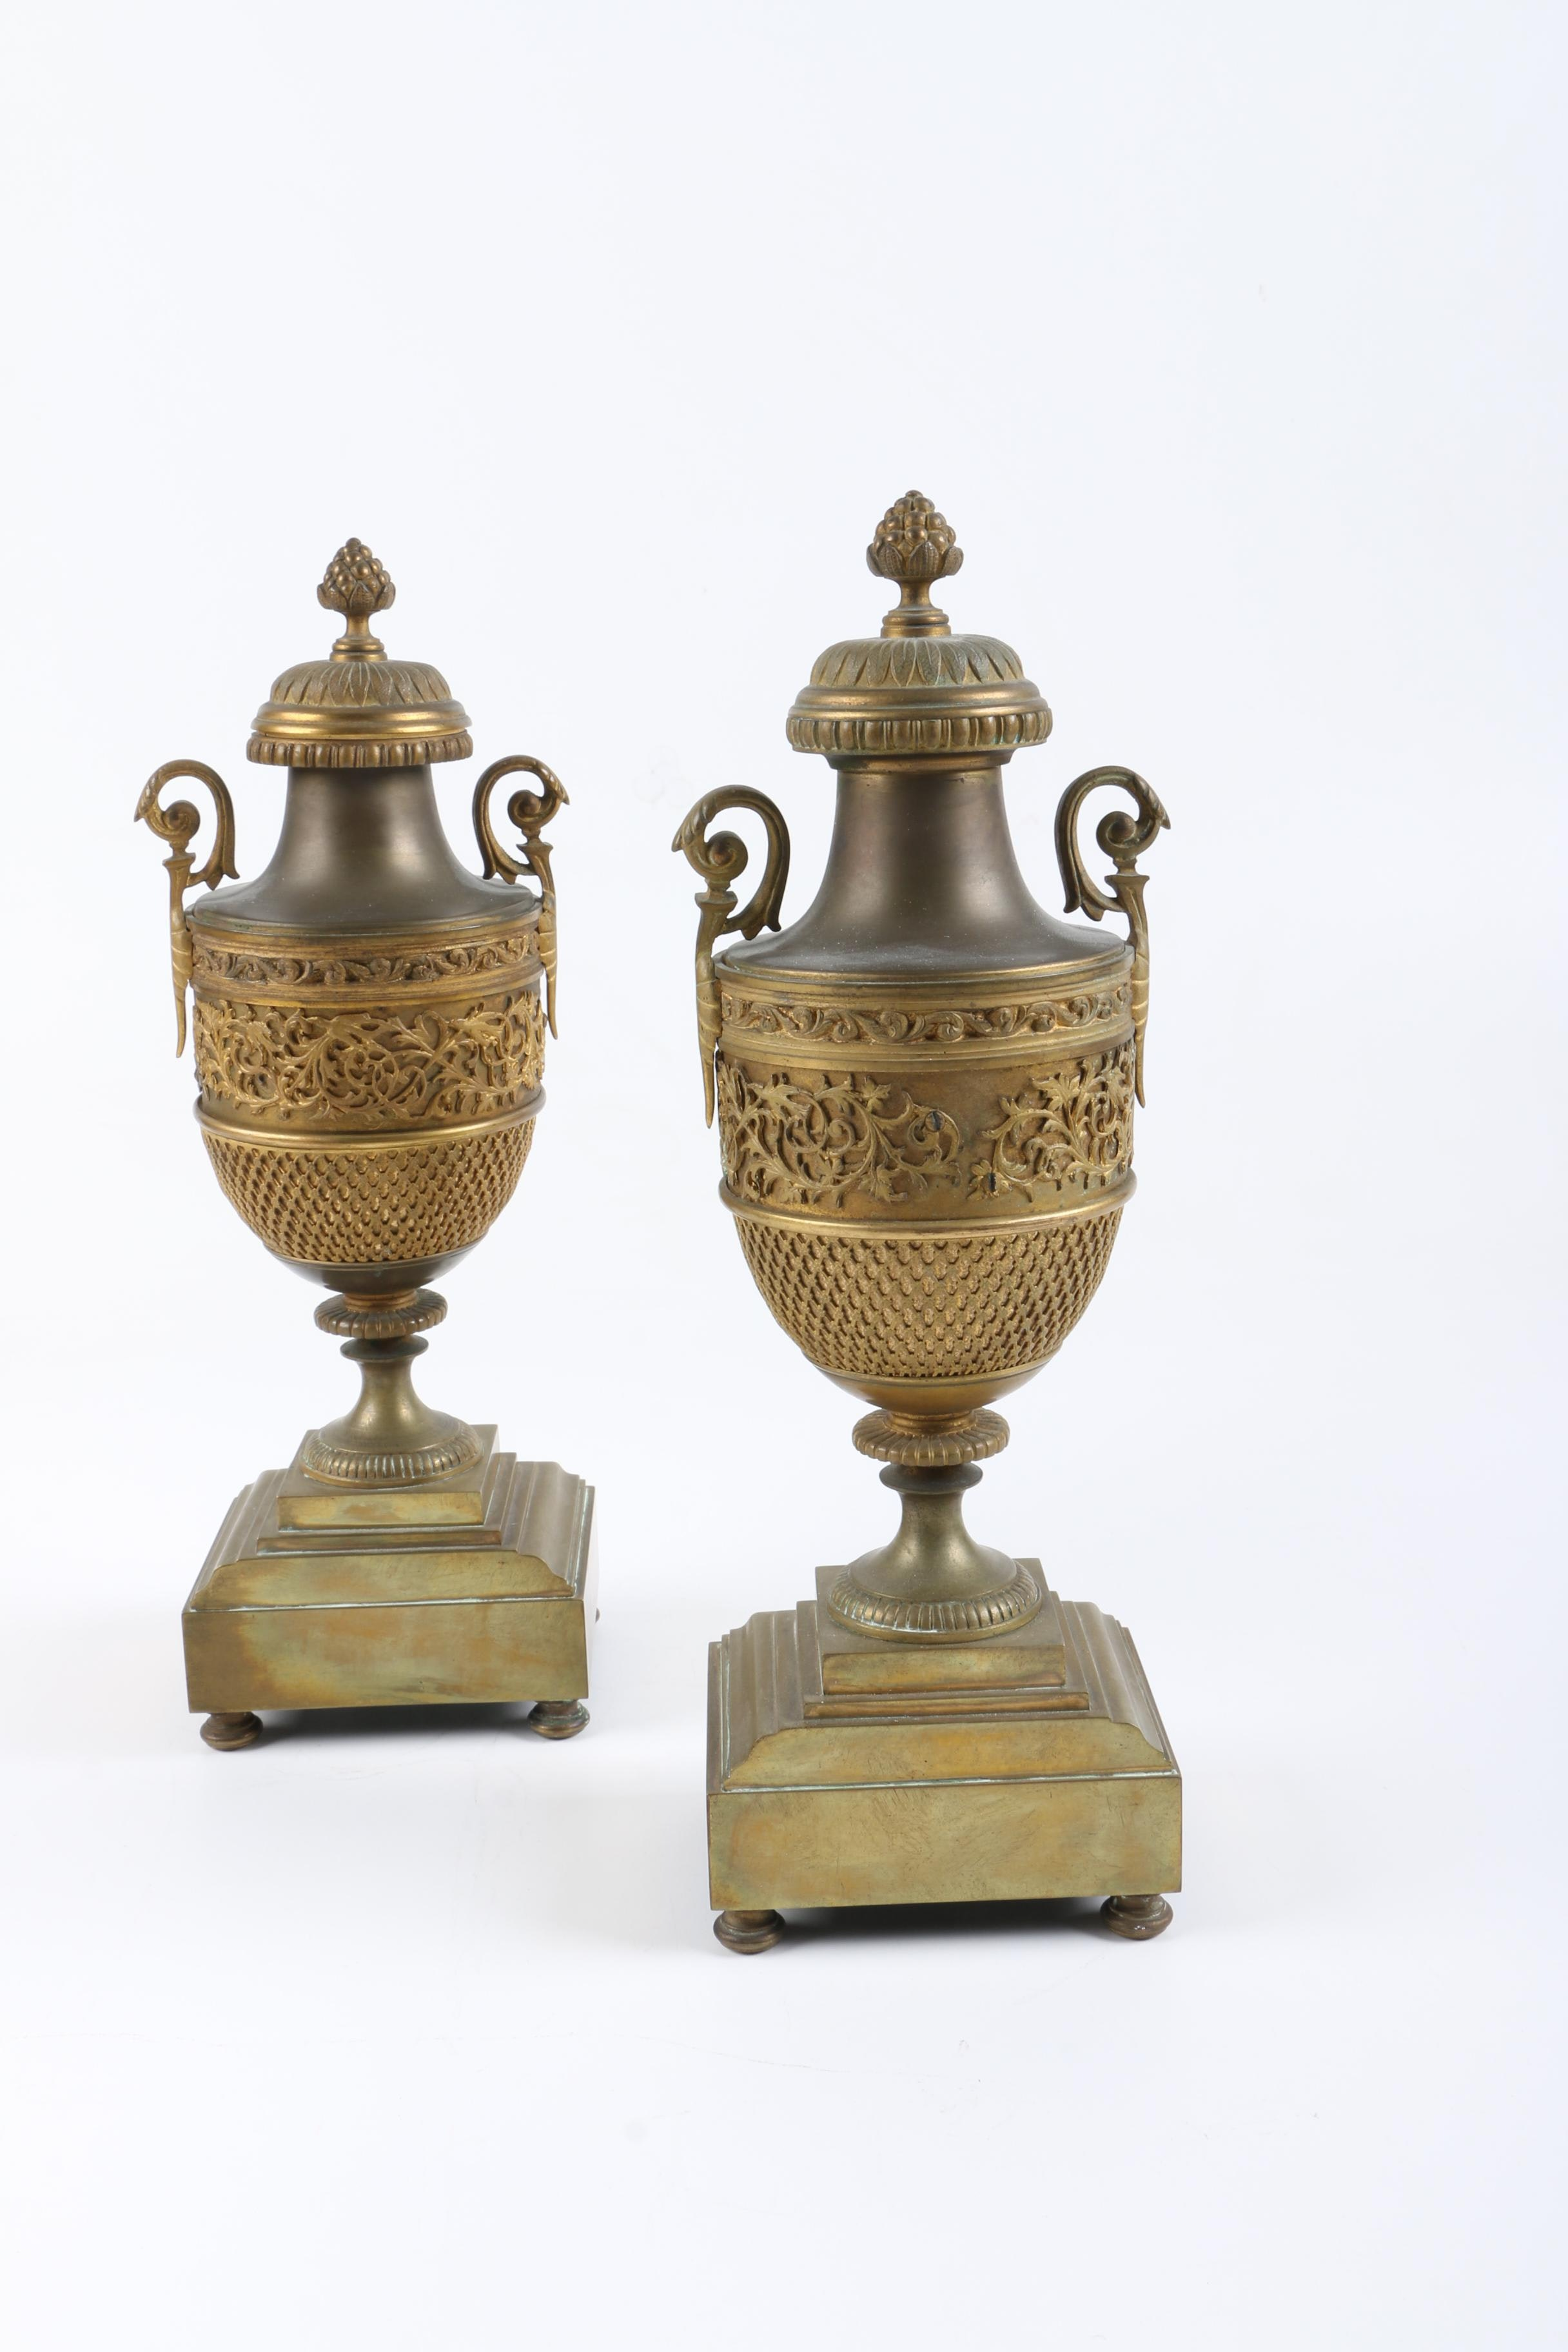 Decorative Brass Urns